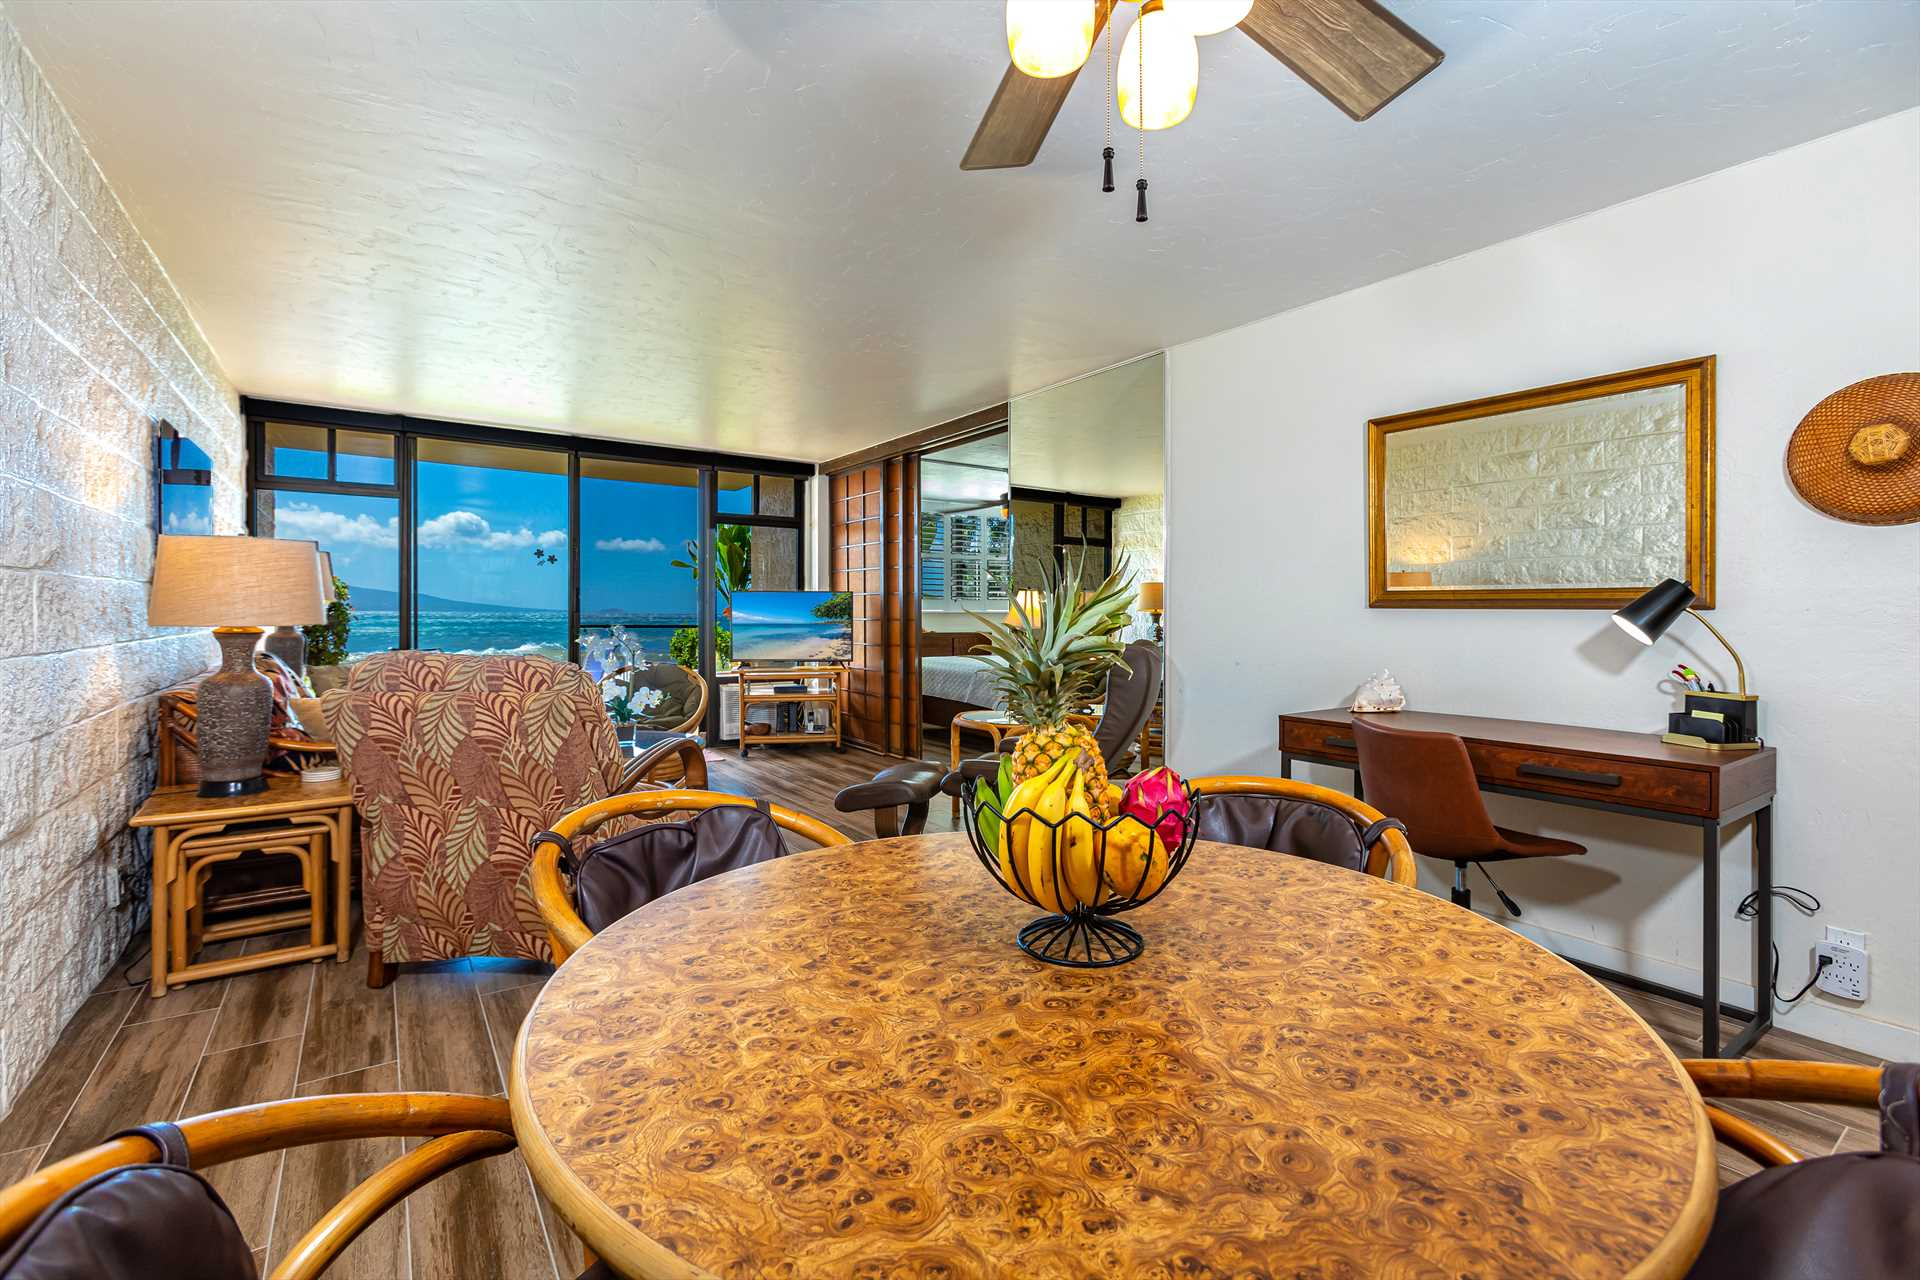 Dining area with a nice view